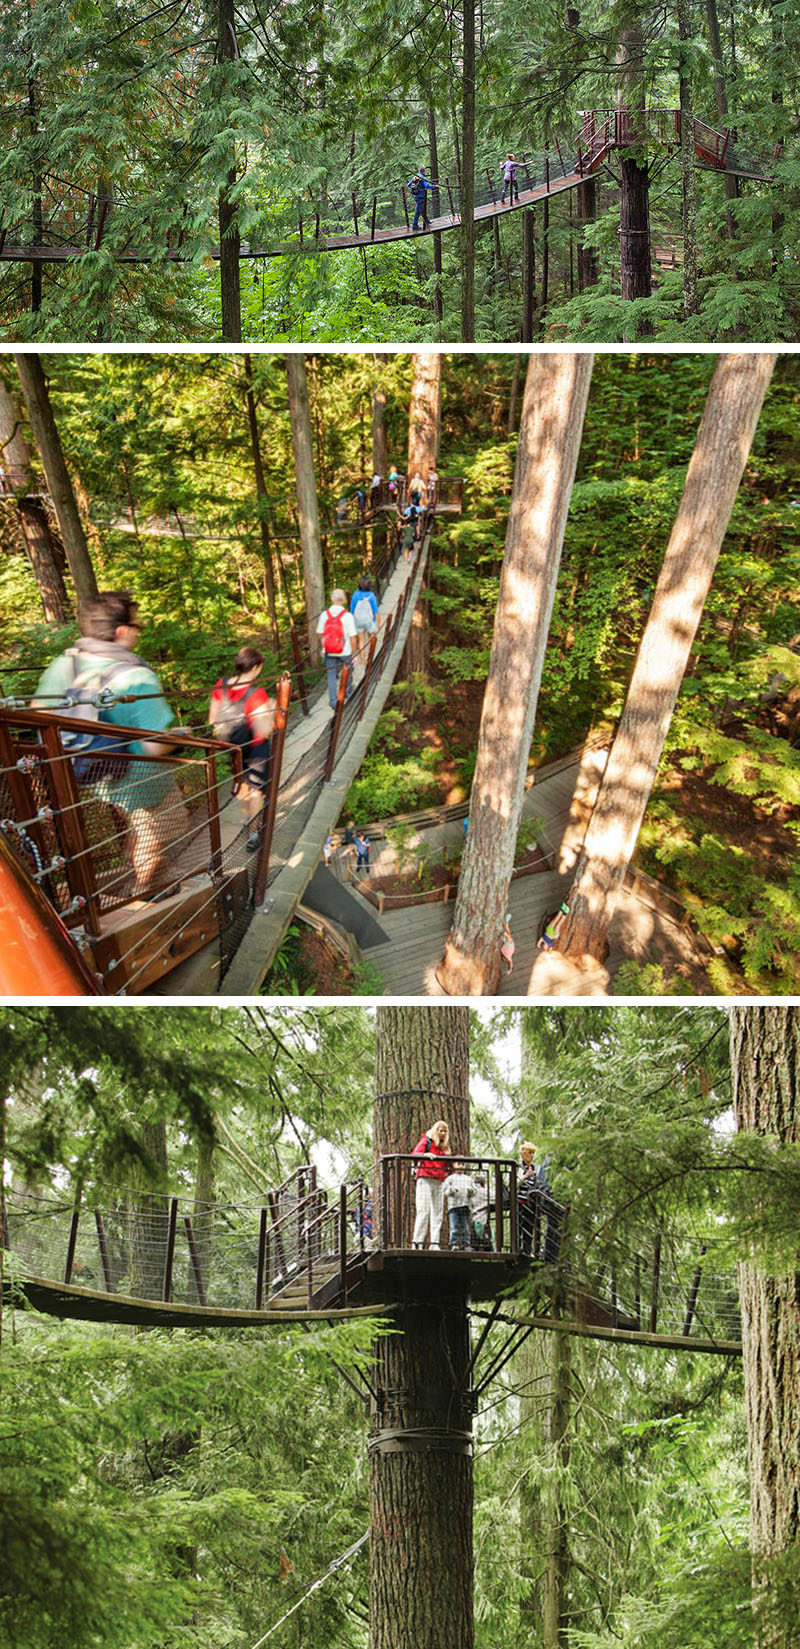 11 Tree Top Walks For Lovers Of Nature // Walk from Douglas fir to Douglas fir across a series of seven mini suspension bridges at the Capilano Treetop Adventure in Vancouver, BC.